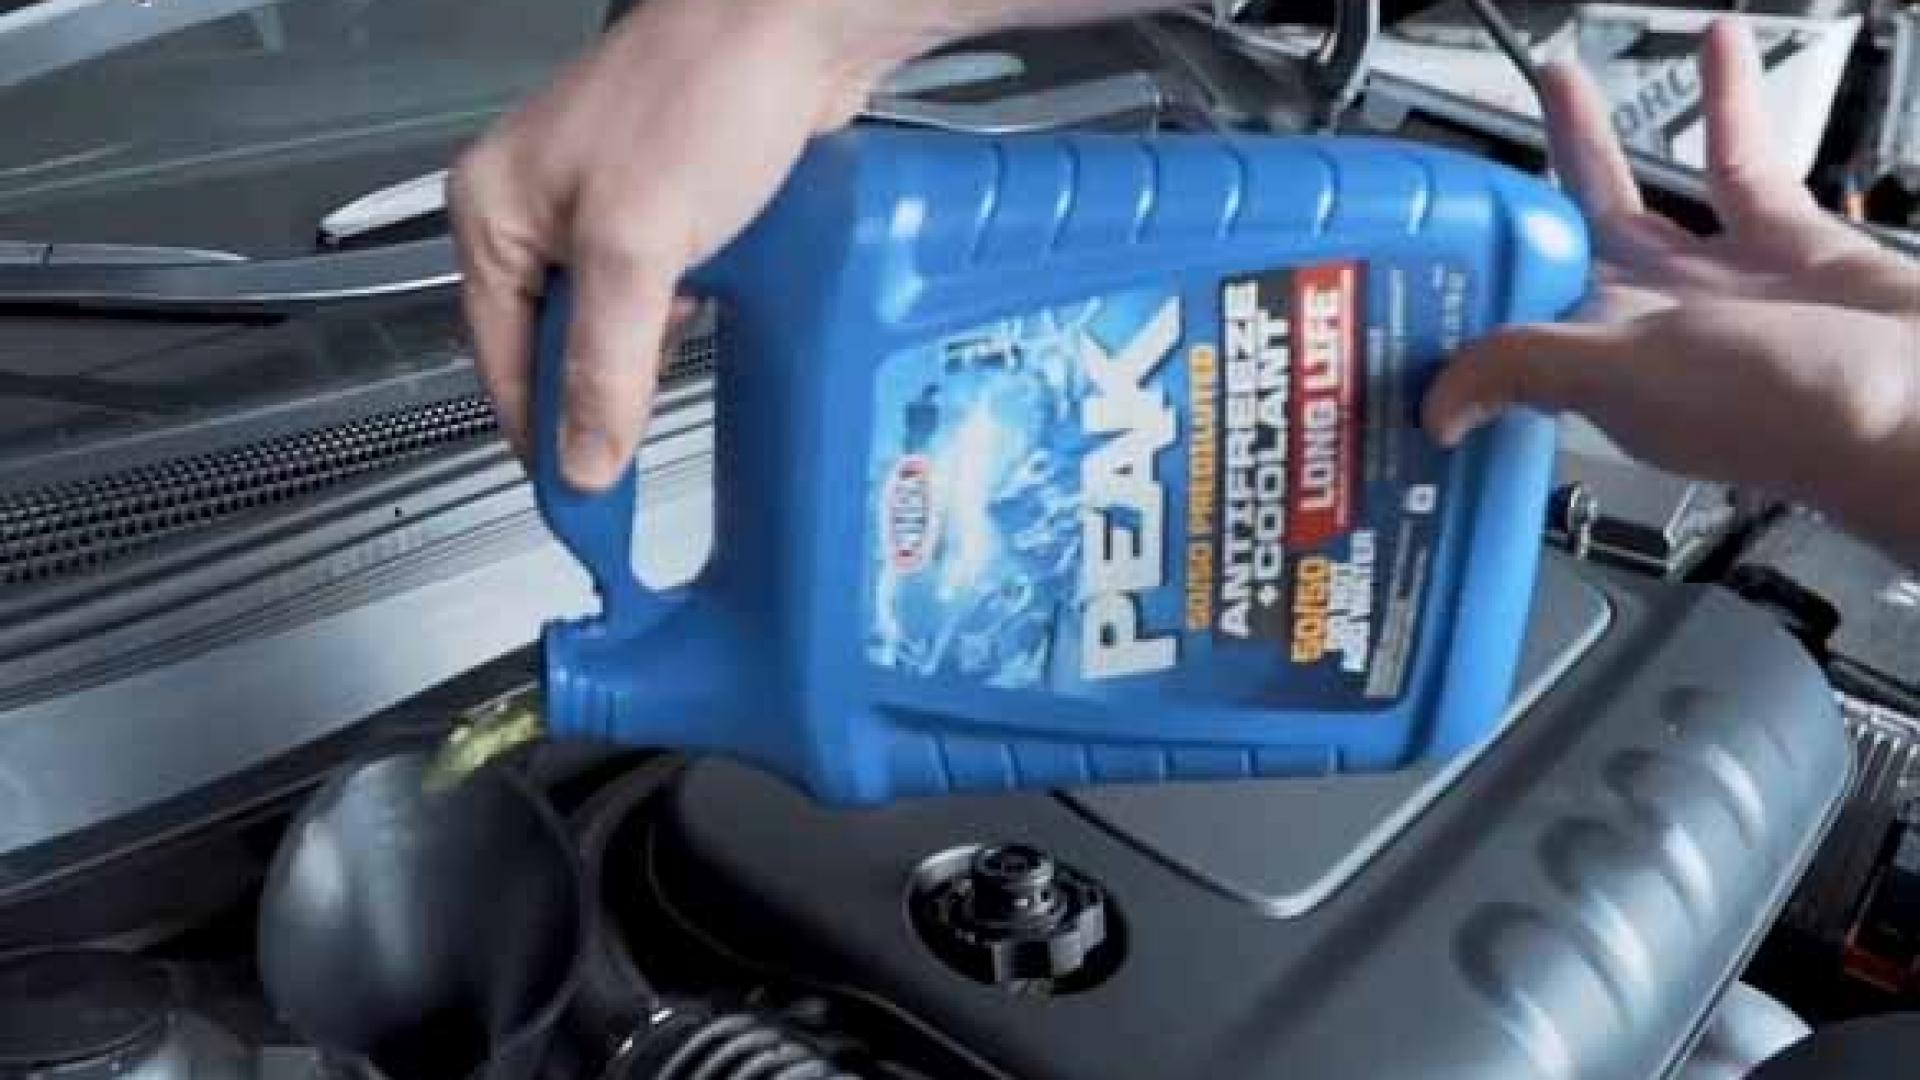 Dr Coolant Thermostat Failure Dr. Coolant aka John Force is treating mechanical emergencies all around this great country. This episode explains how poor or neglected coolant can effect the thermostat on your vehicle.